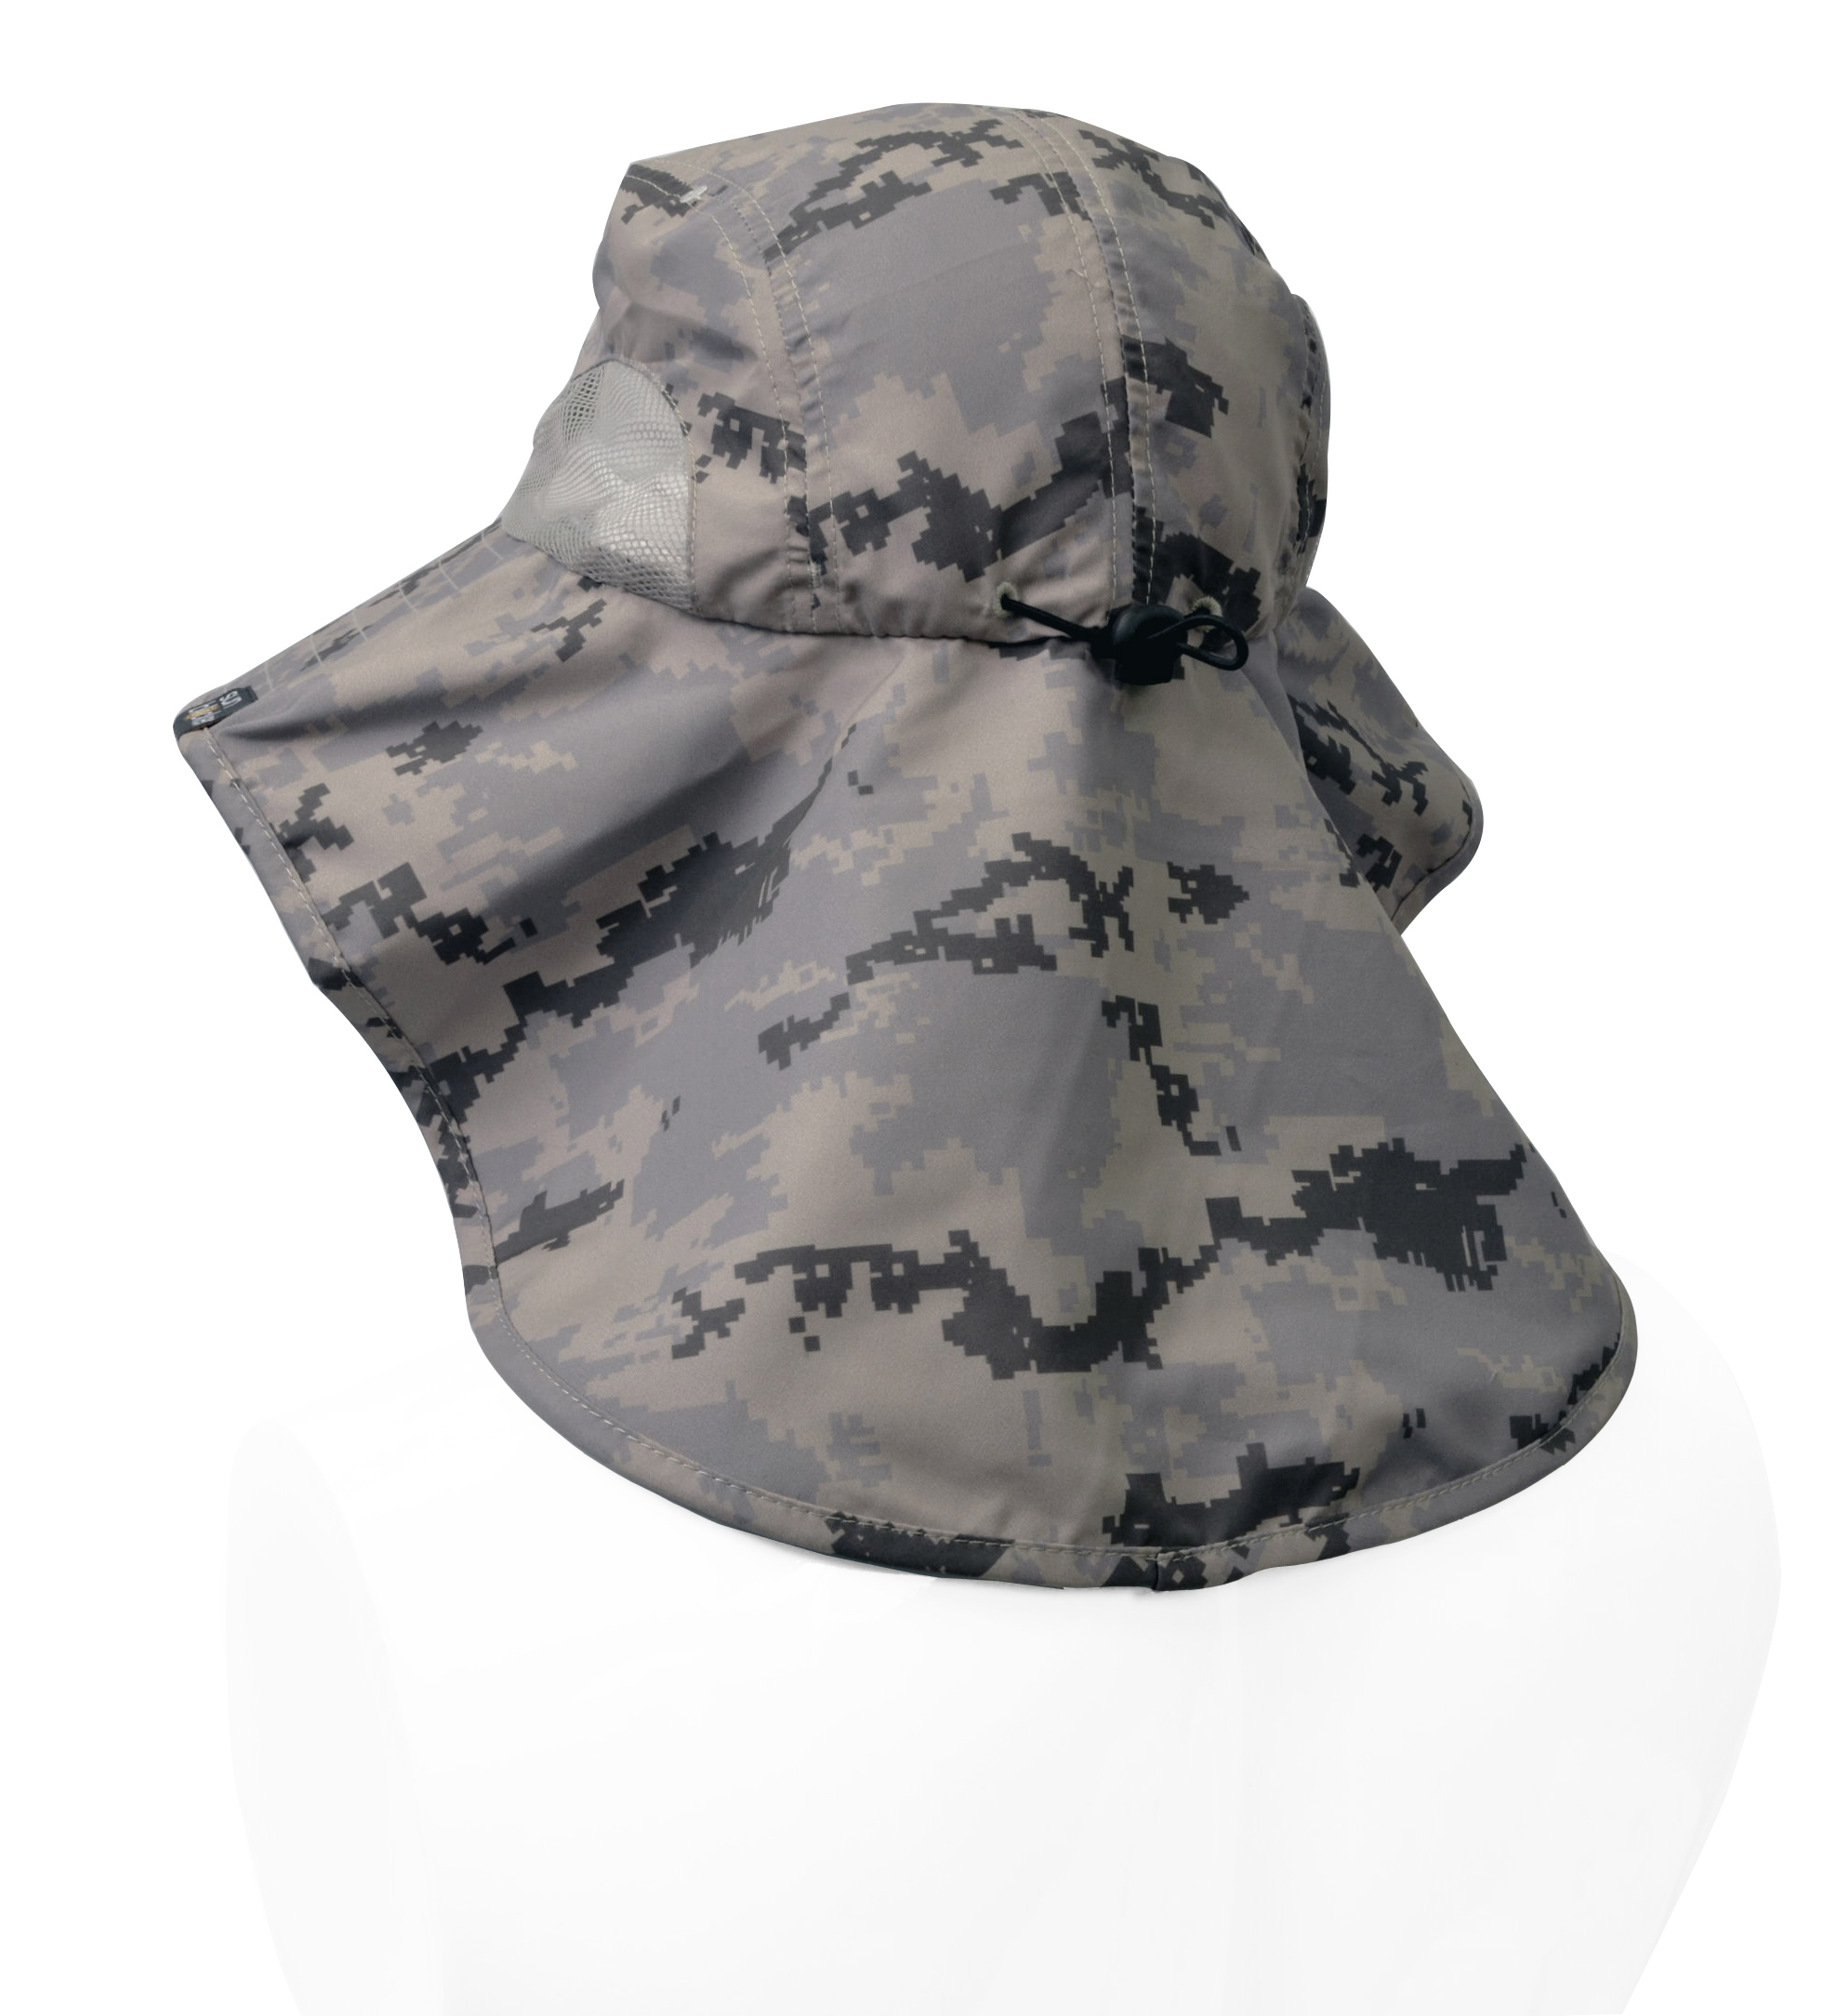 Sun-Hat-Camo-Cap-w-Wide-Brim-Ear-amp-Neck-UV-Protection-for-Fishing-Camping-Hiking thumbnail 6